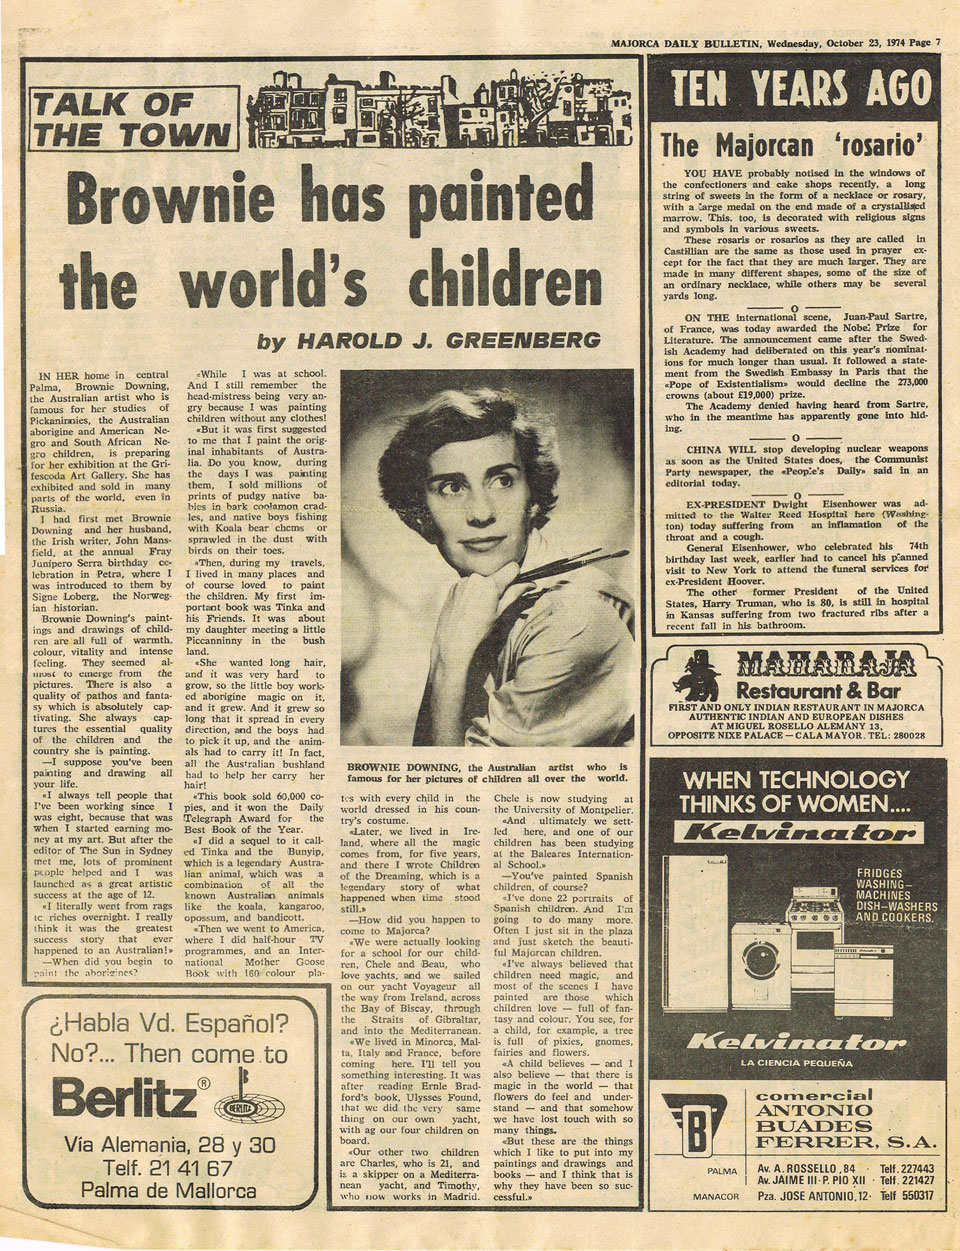 This article about Brownie appeared in the Majorca Daily Bulletin in 1974